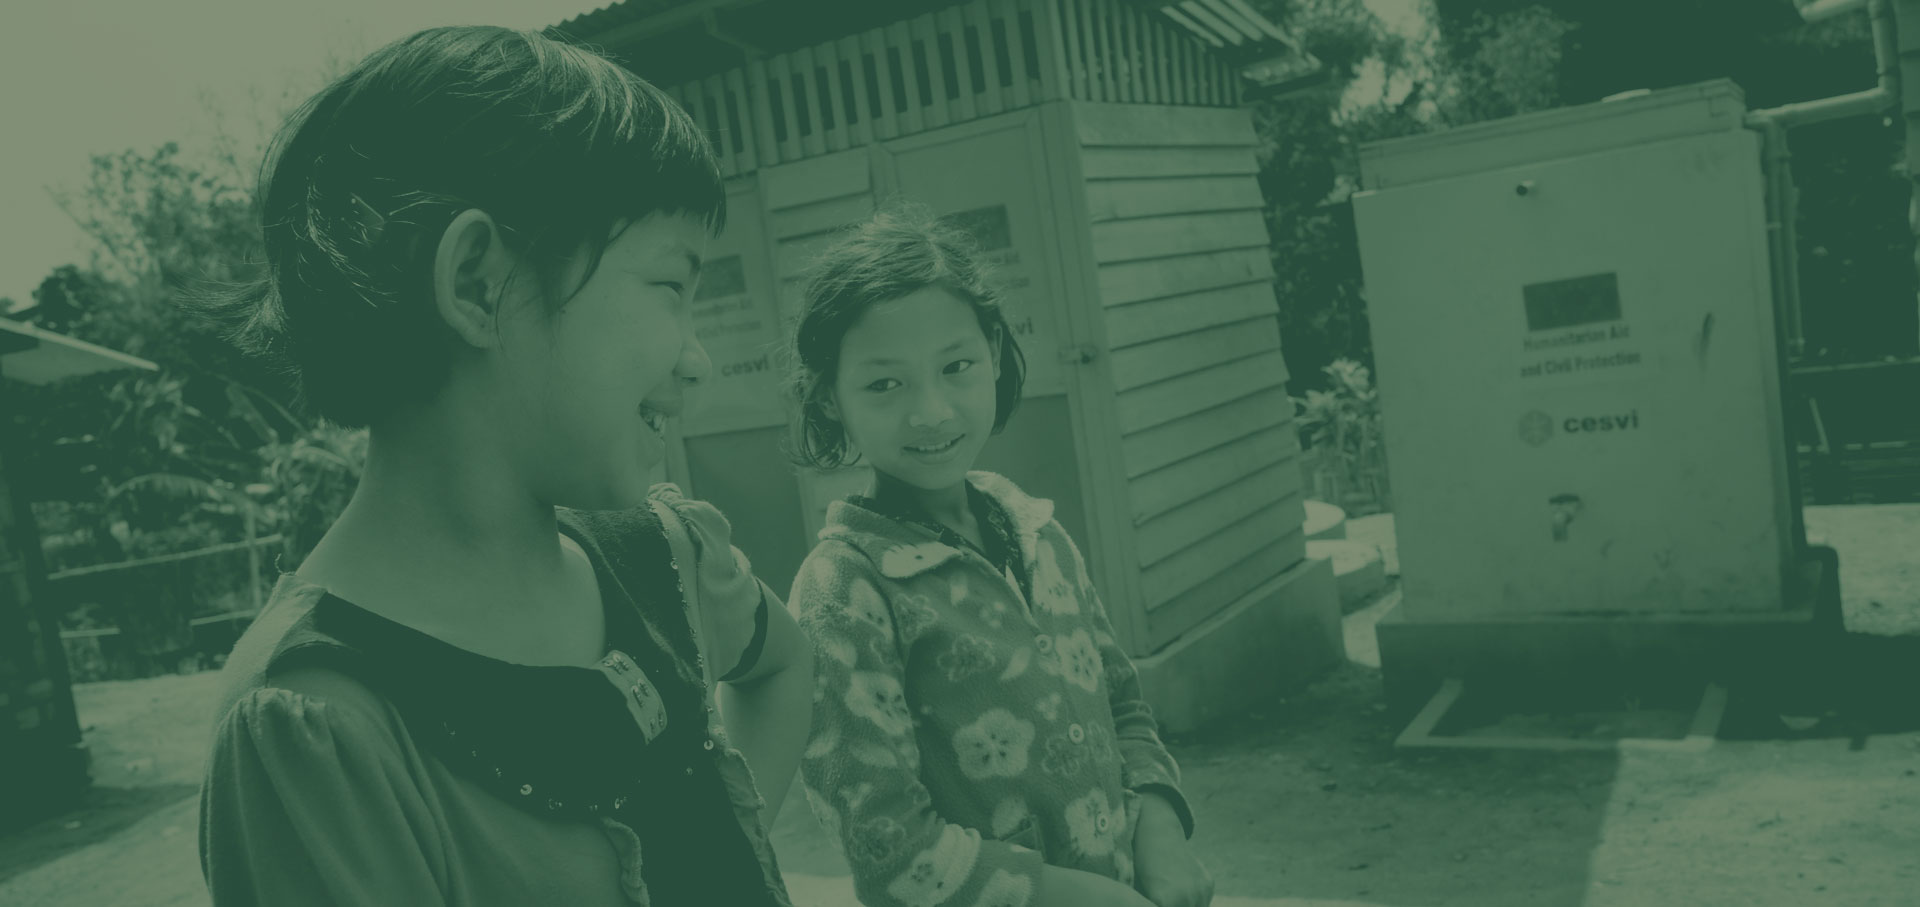 Water and Hope in Kachin